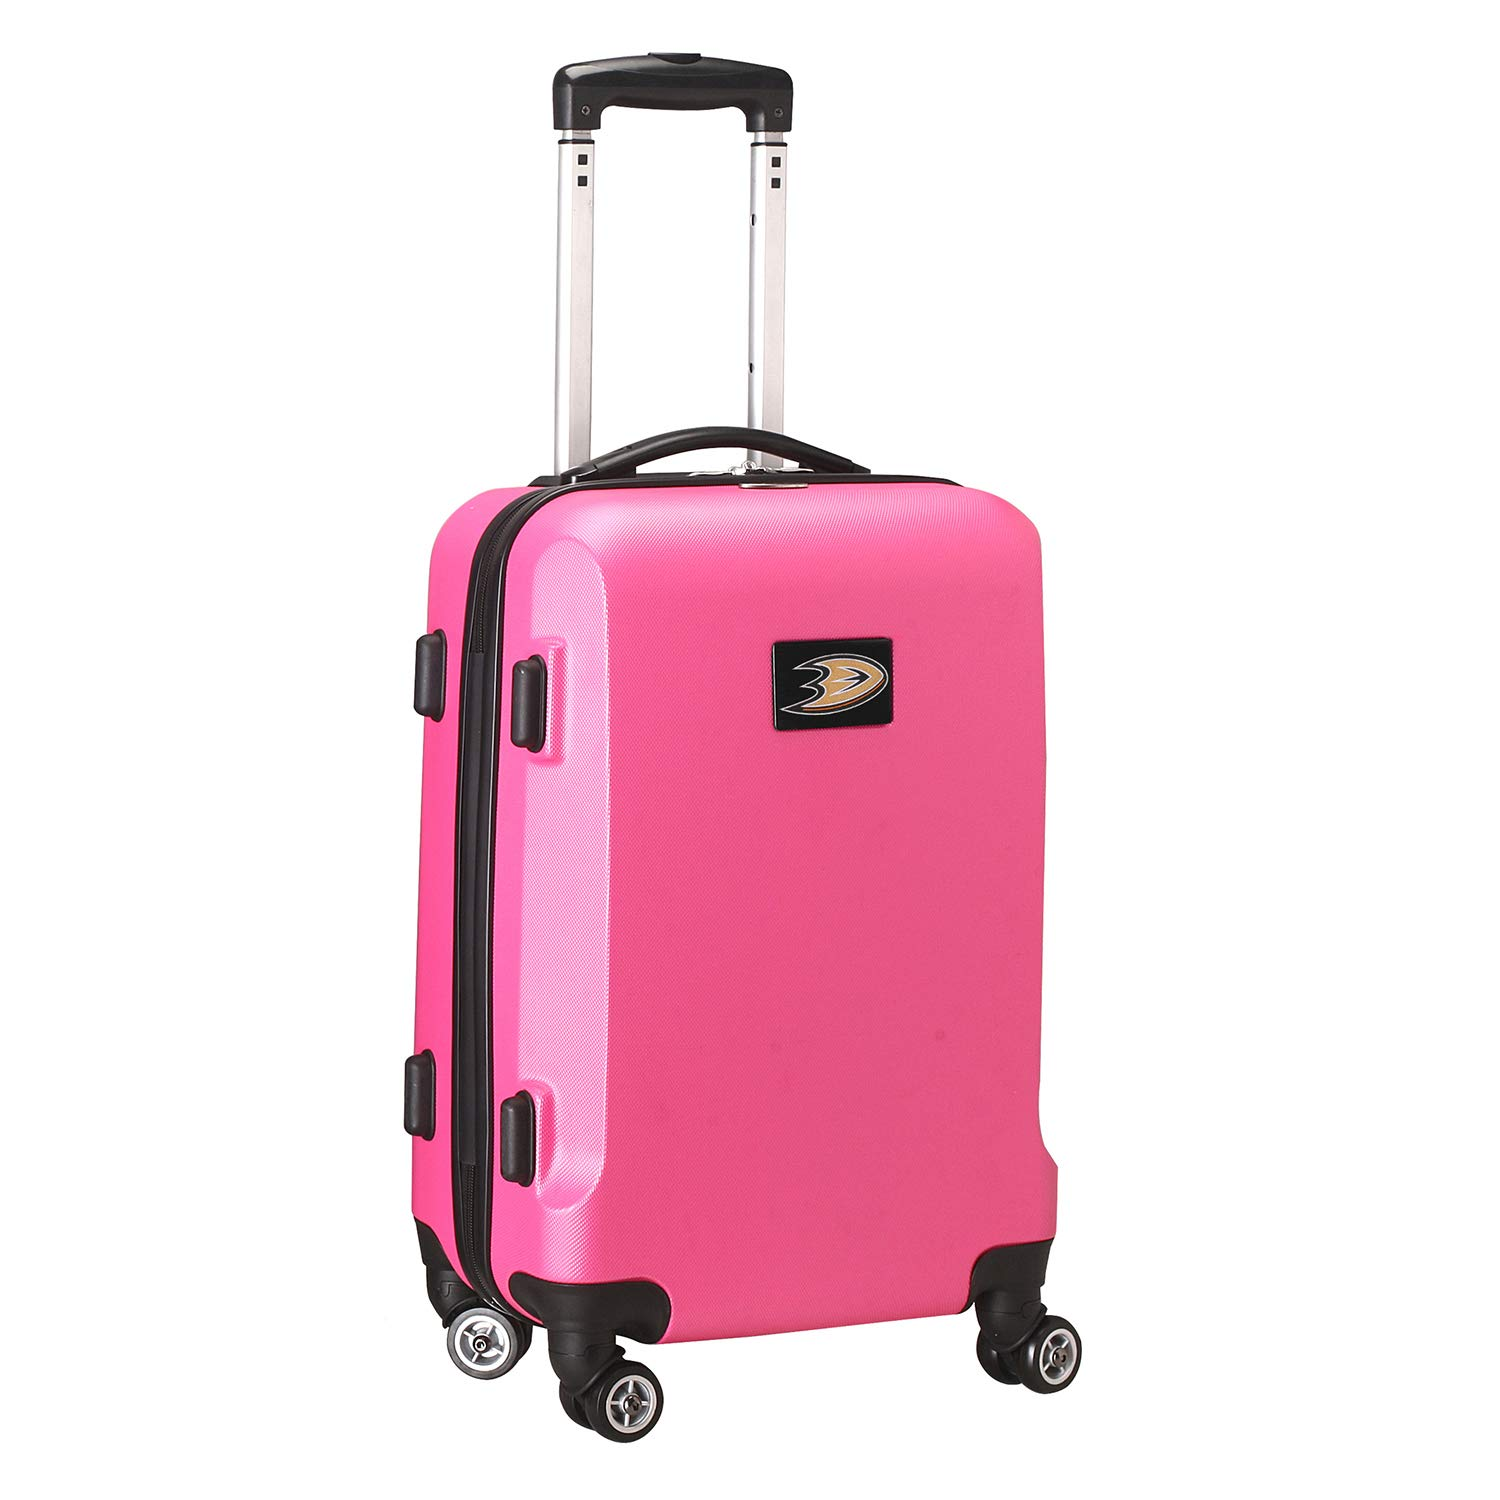 NHL Anaheim Ducks Carry-On Hardcase Luggage Spinner, Pink